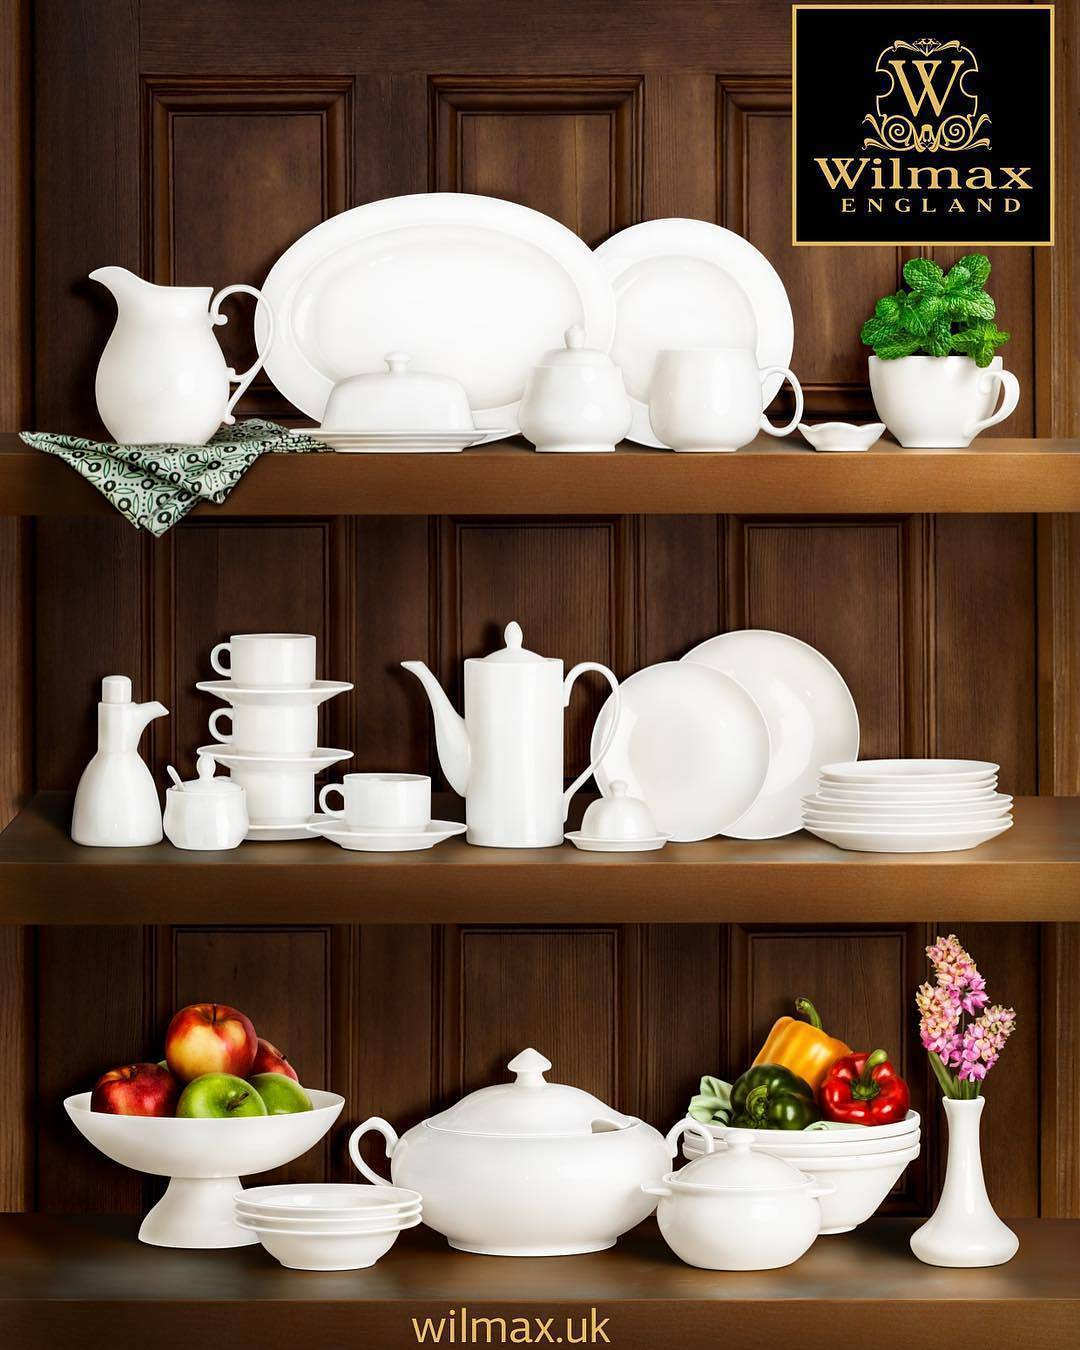 FINE PORCELAIN SUGAR BOWL 11 OZ | 325 ML